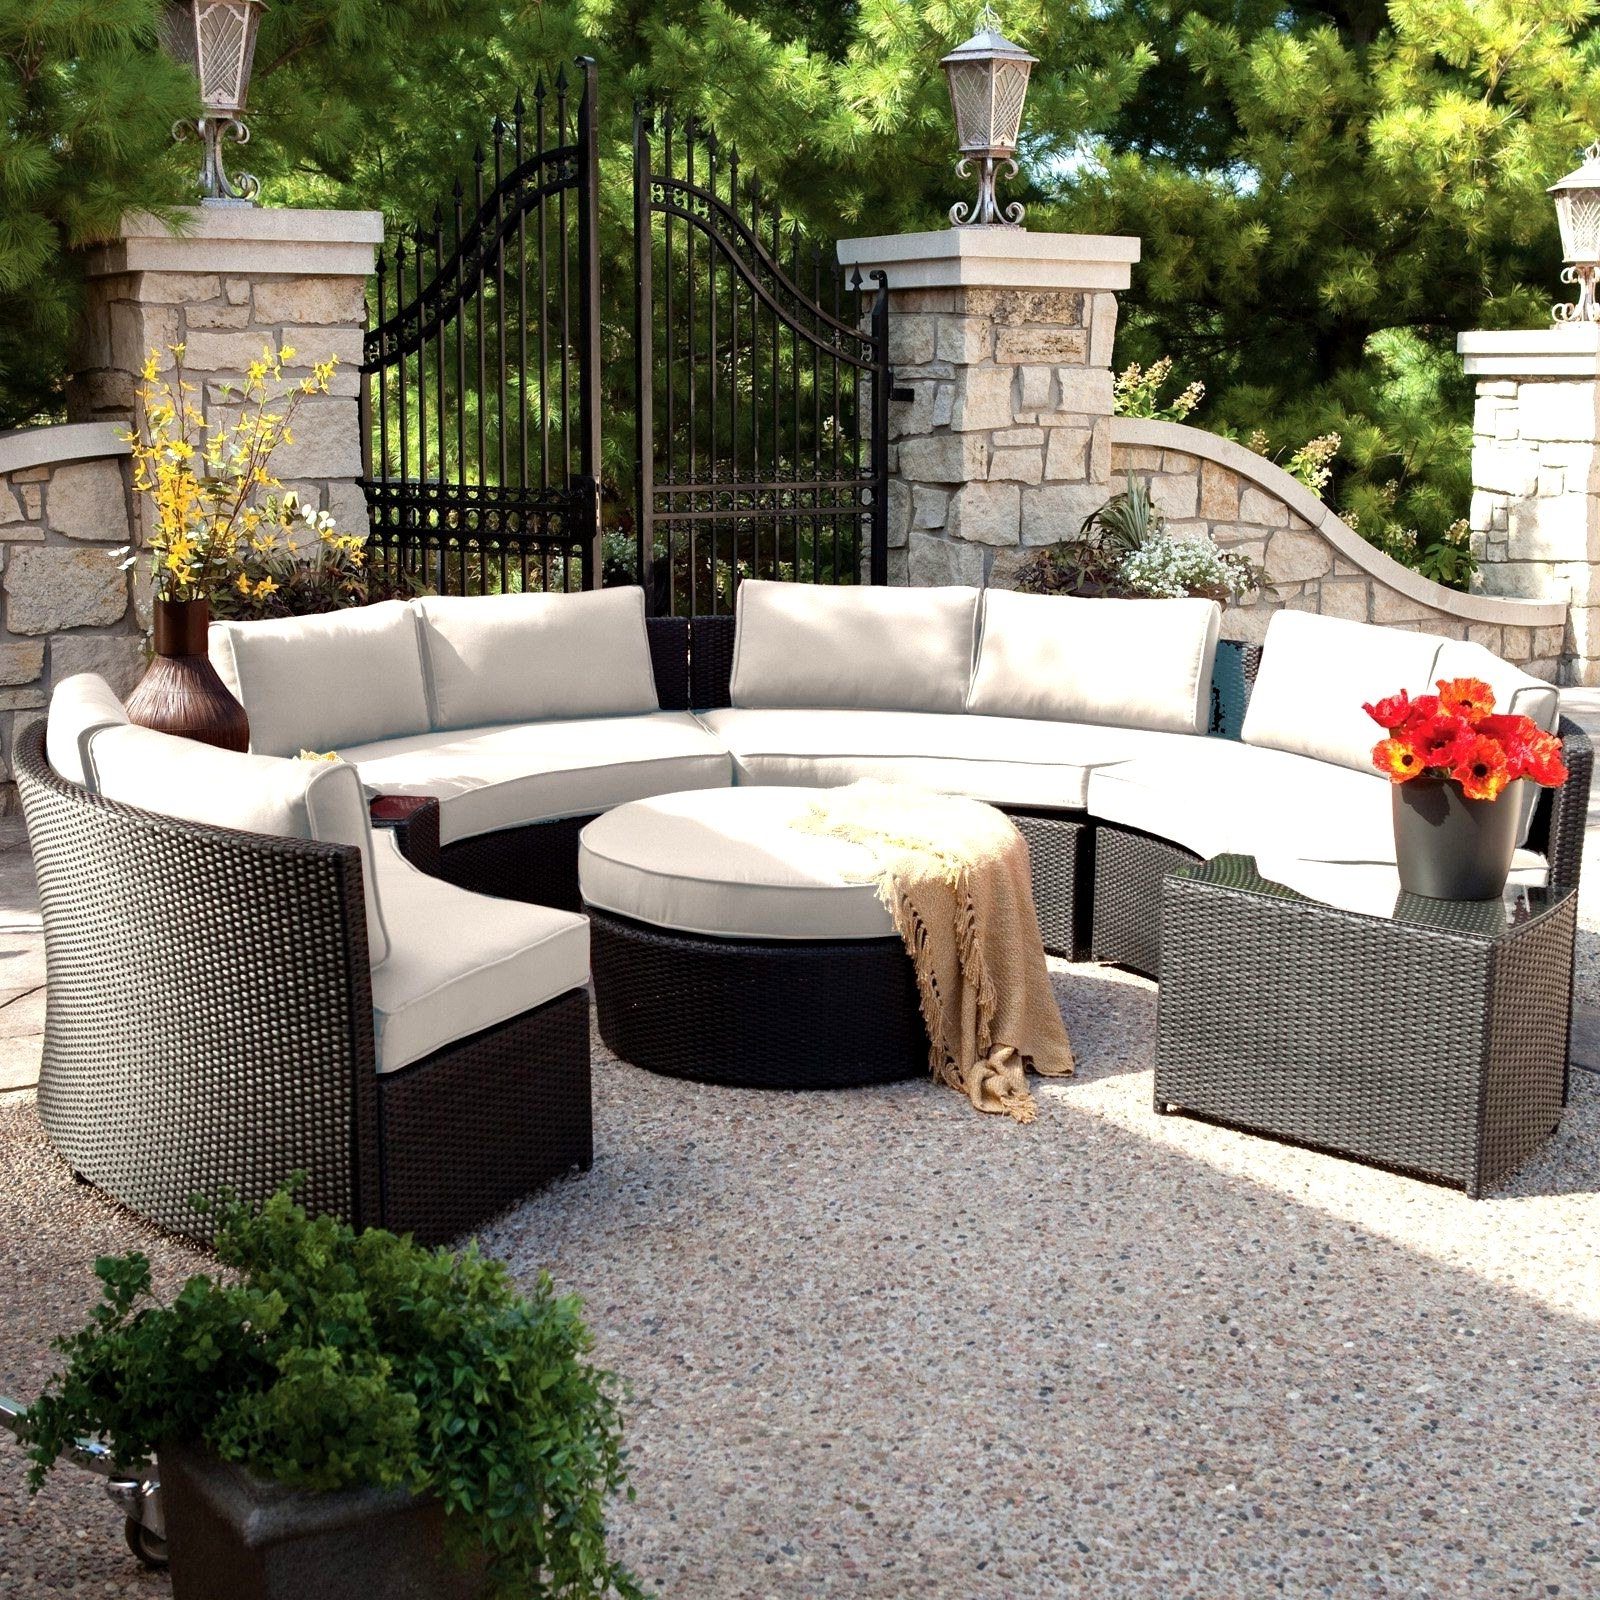 Widely Used Sunbrella Outdoor Furniture Awesome Outdoor Furniture Cushions With Sunbrella Black Patio Umbrellas (View 20 of 20)